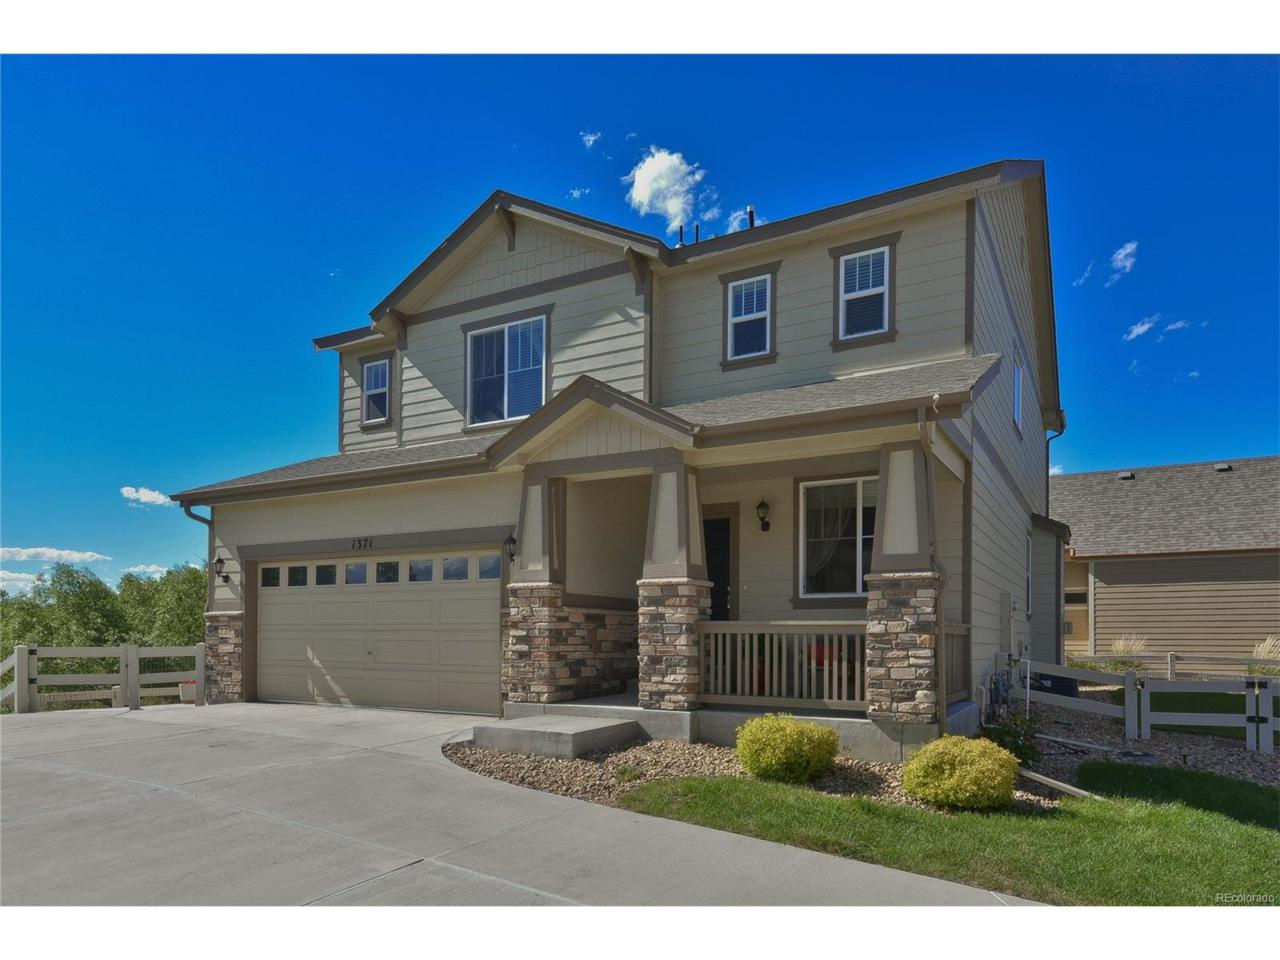 1371 Armstrong Drive, Longmont, CO 80504 (MLS #2793250) :: 8z Real Estate